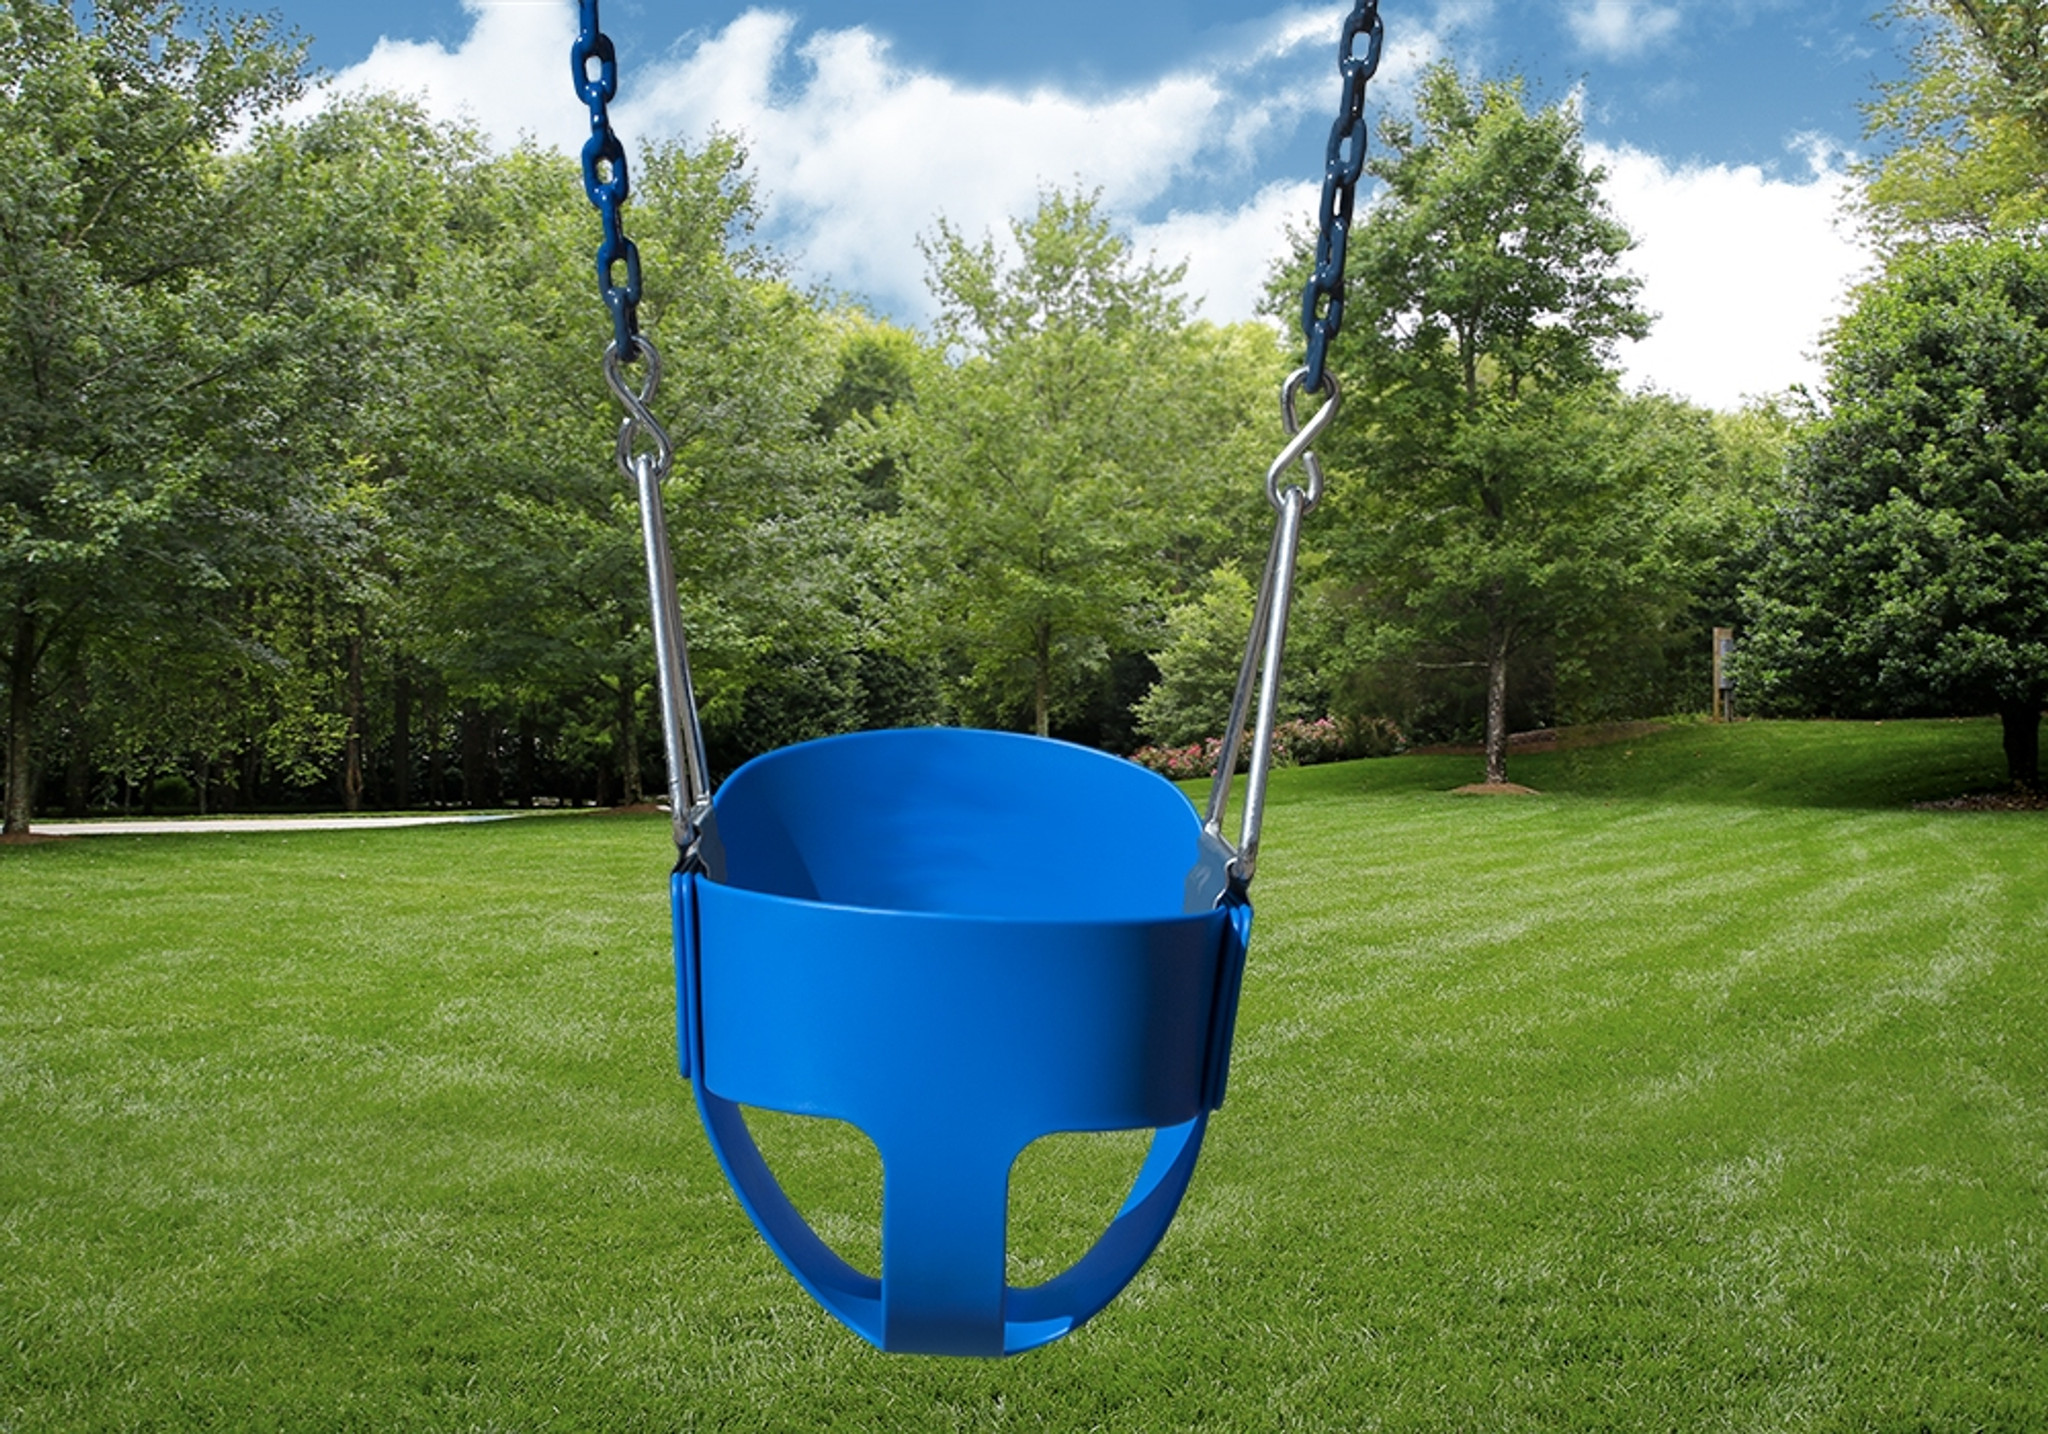 Outdoor shot of Blue Full Bucket Toddler Swing from PlayNation.